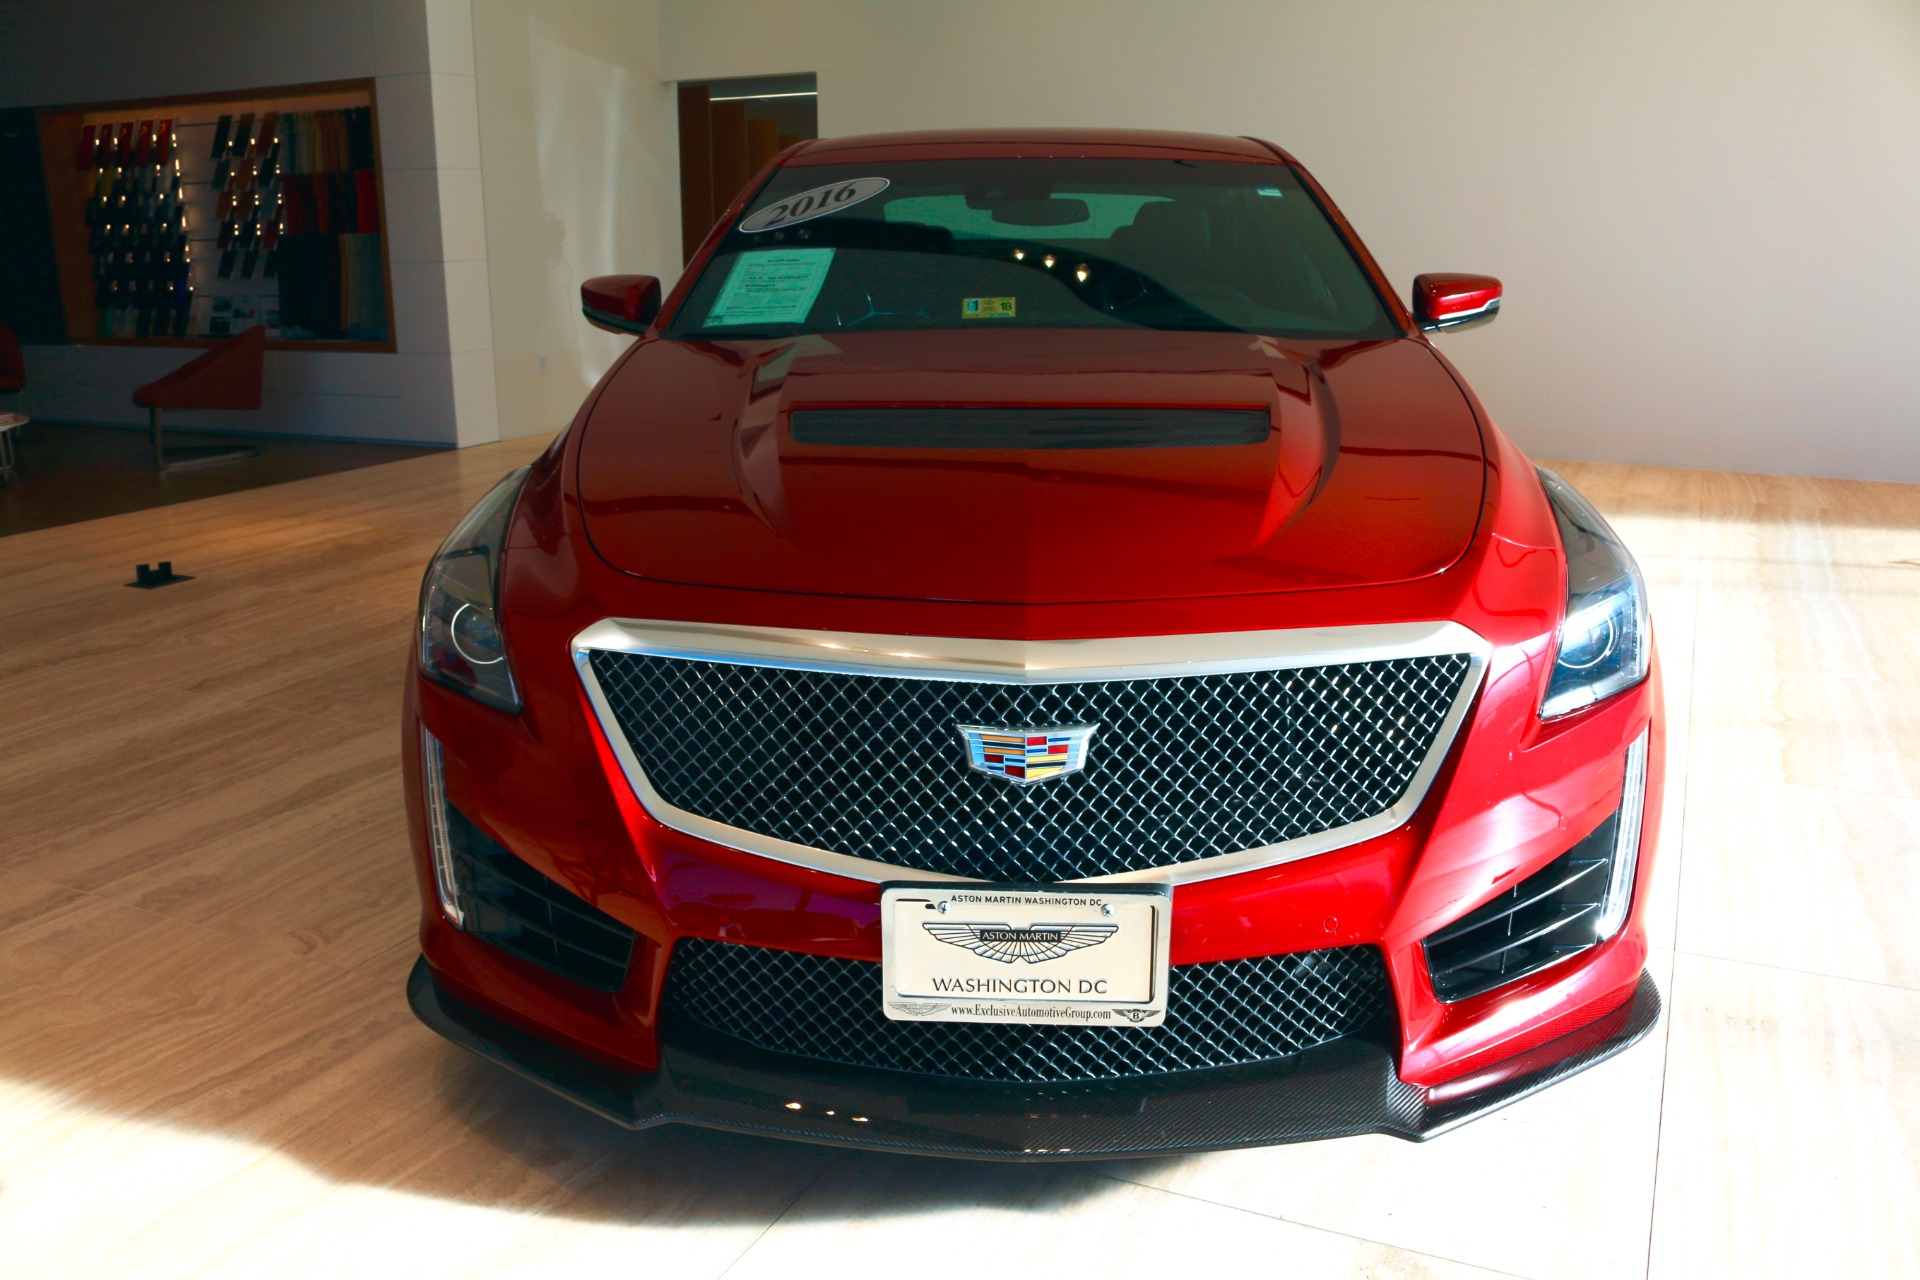 757_p8_l Great Description About 2012 Cts-v for Sale with Inspiring Images Cars Review